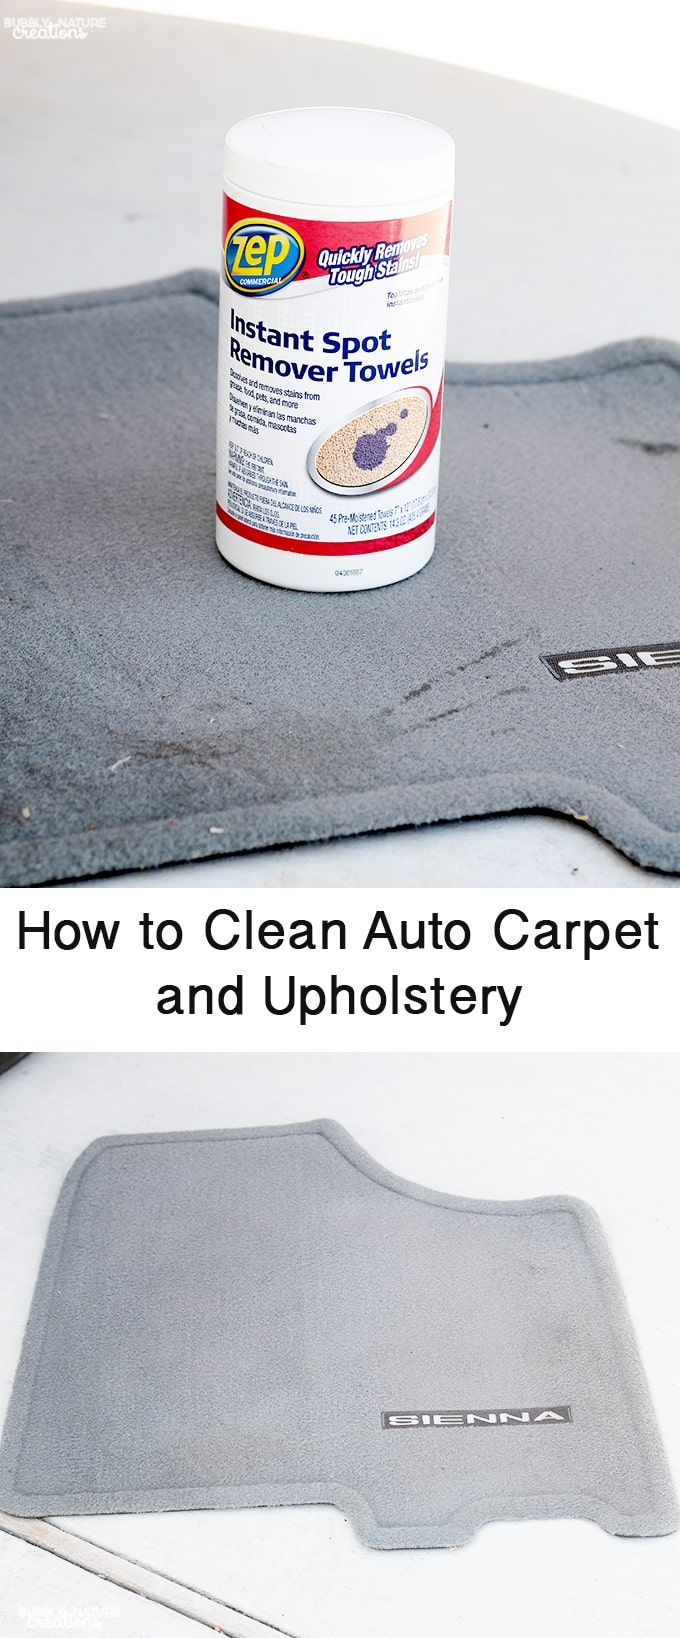 How to Clean Car Upholstery Quickly and Easily! #ZepSocialStars